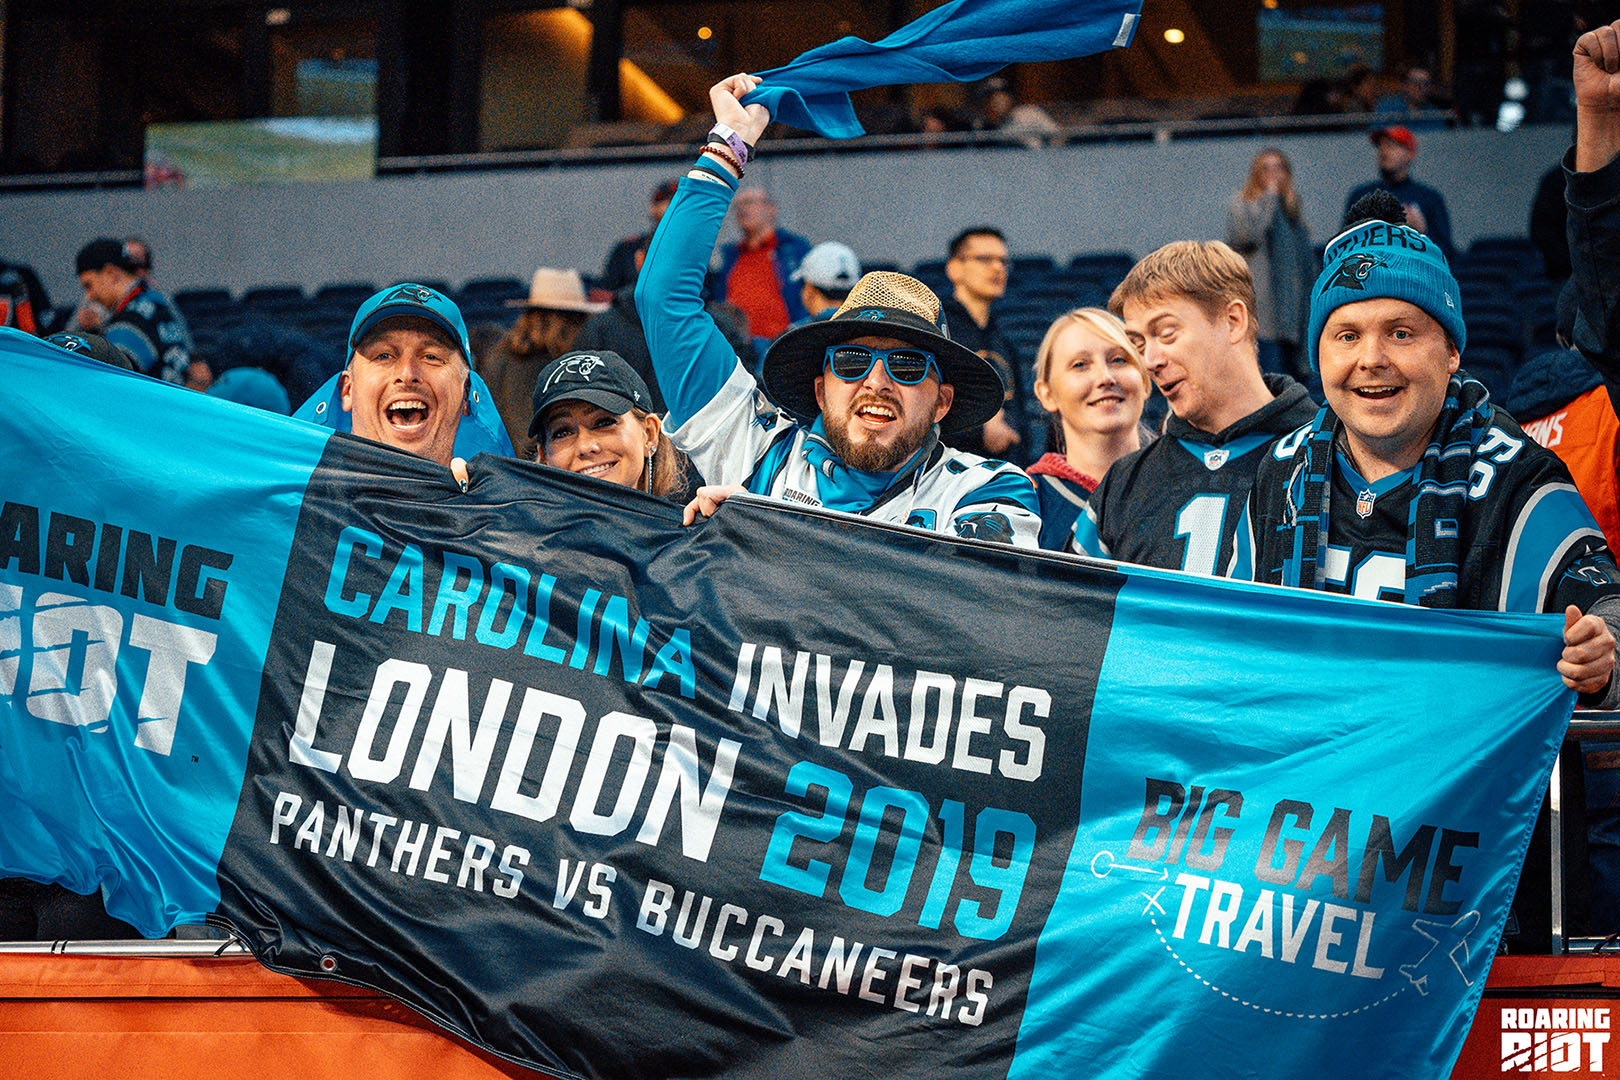 WATCH: The Roaring Riot Takes over London